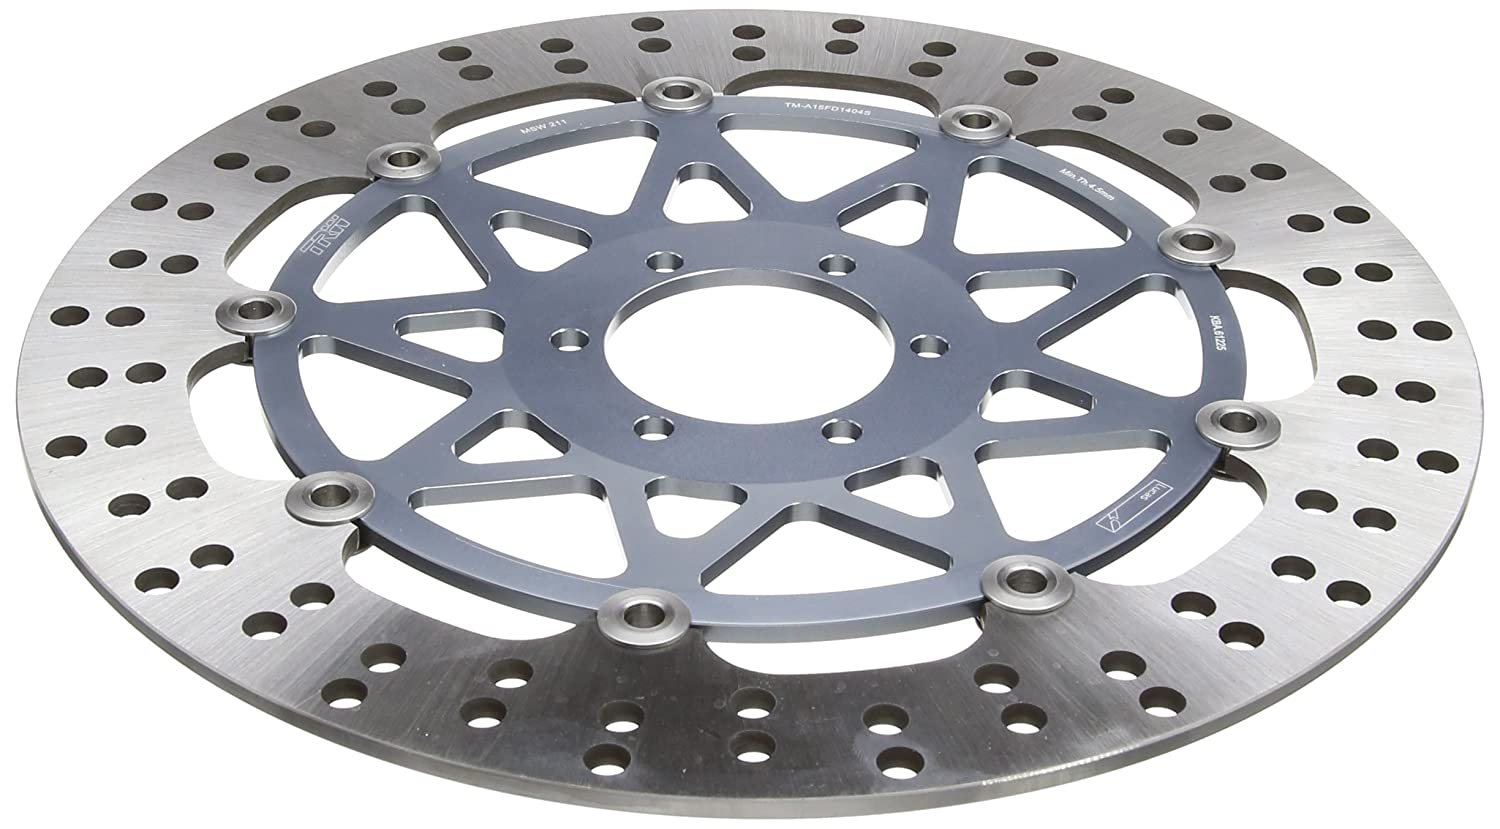 TRW MSW211 Motorcycle Brake Disc Floated